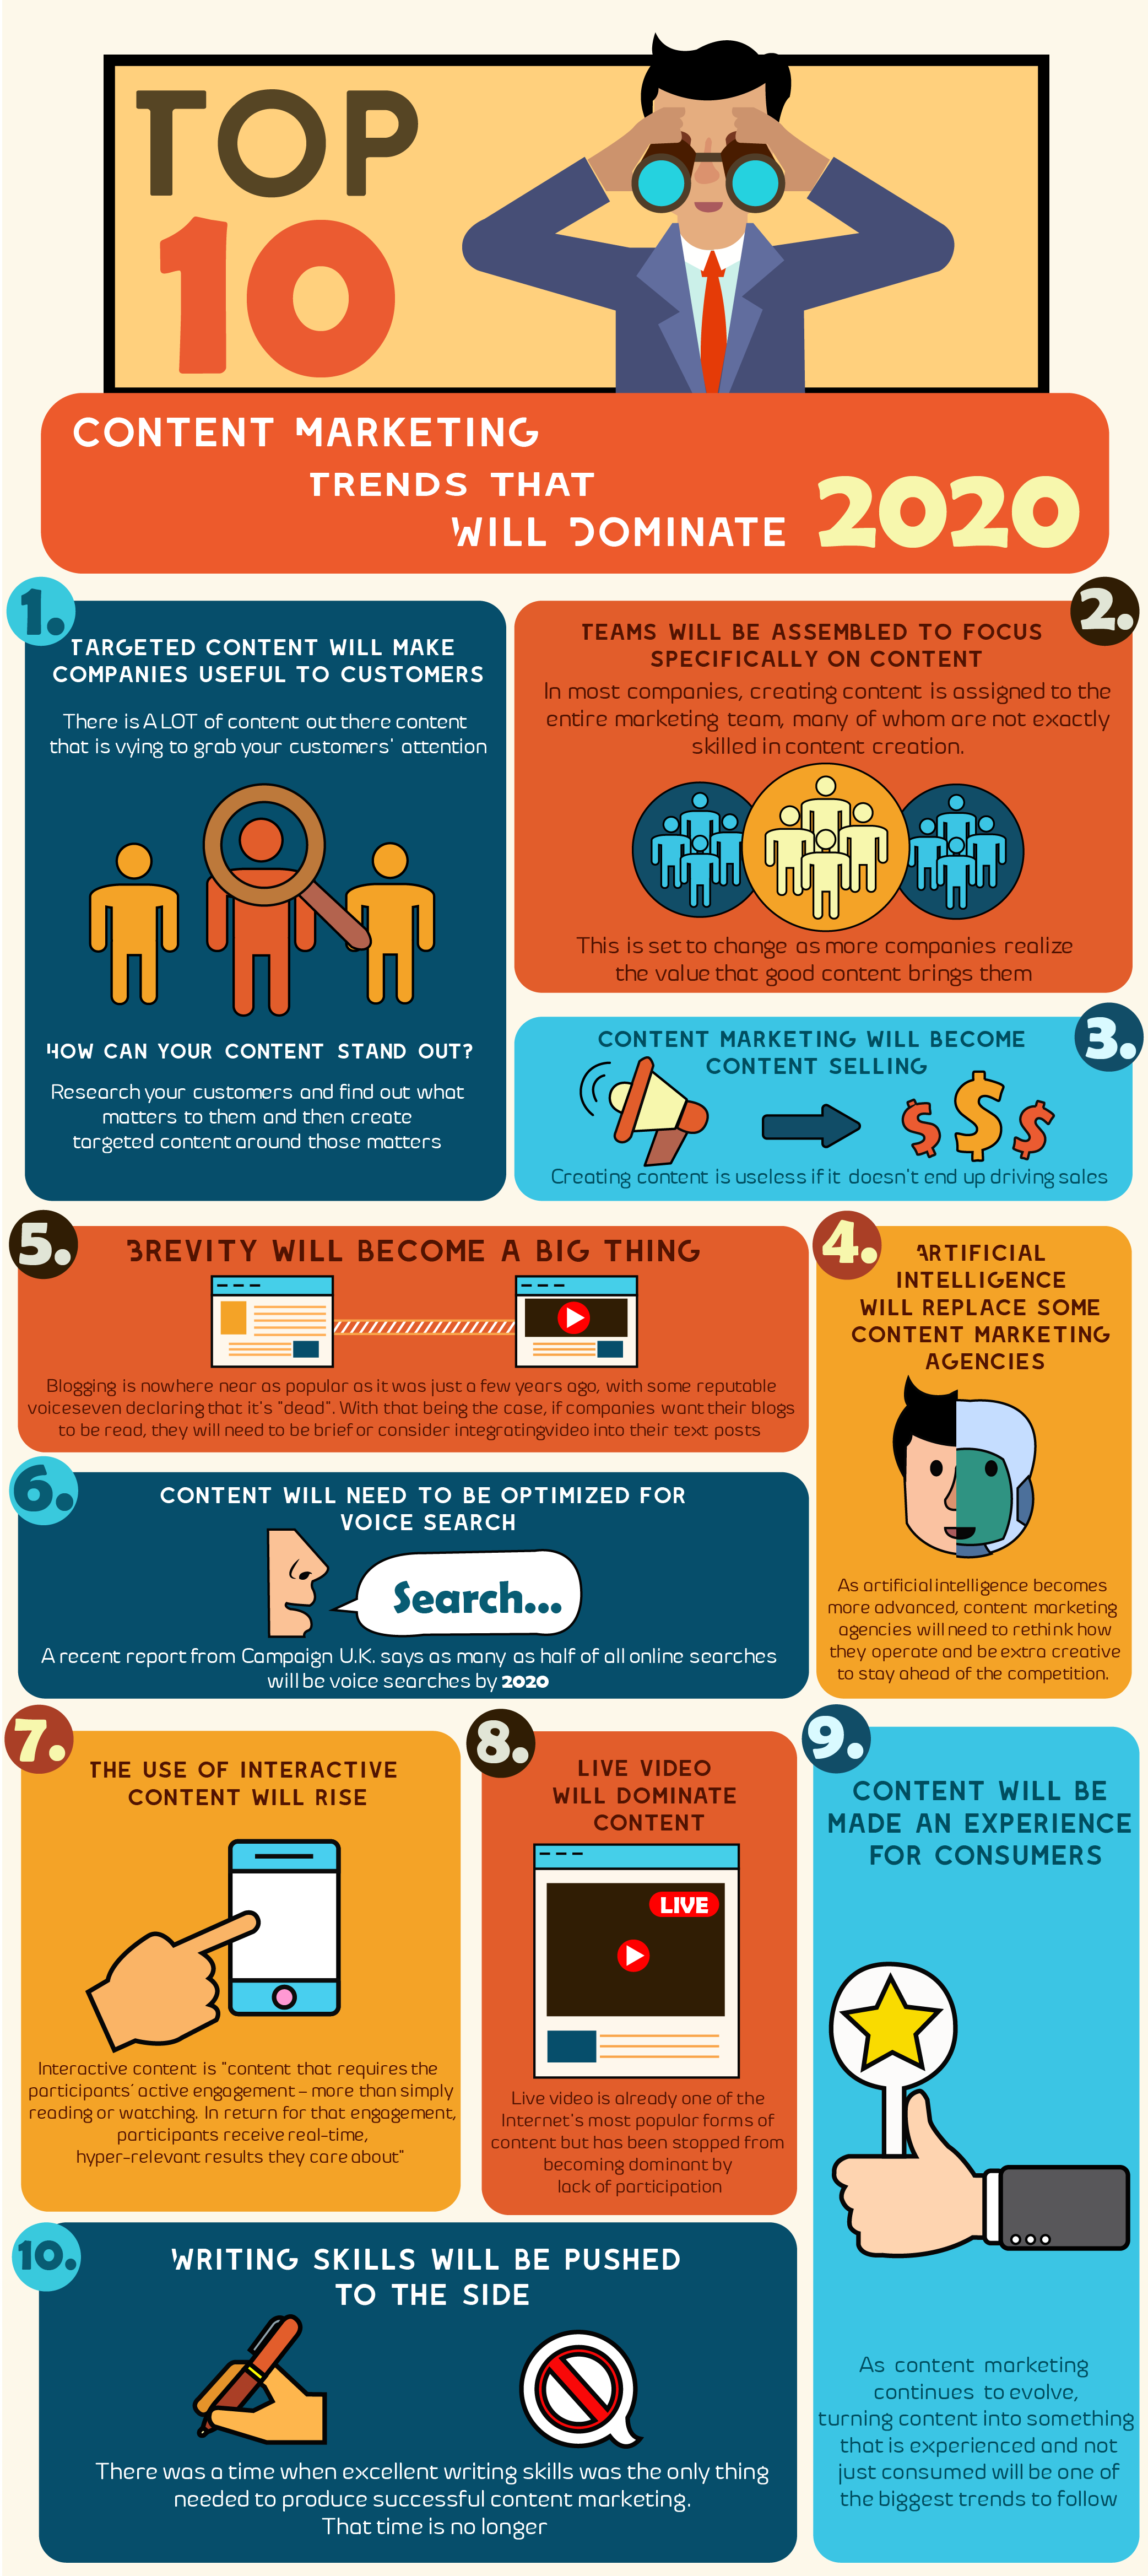 Digital Marketing Trends 2020.Top 10 Content Marketing Trends That Will Dominate 2020